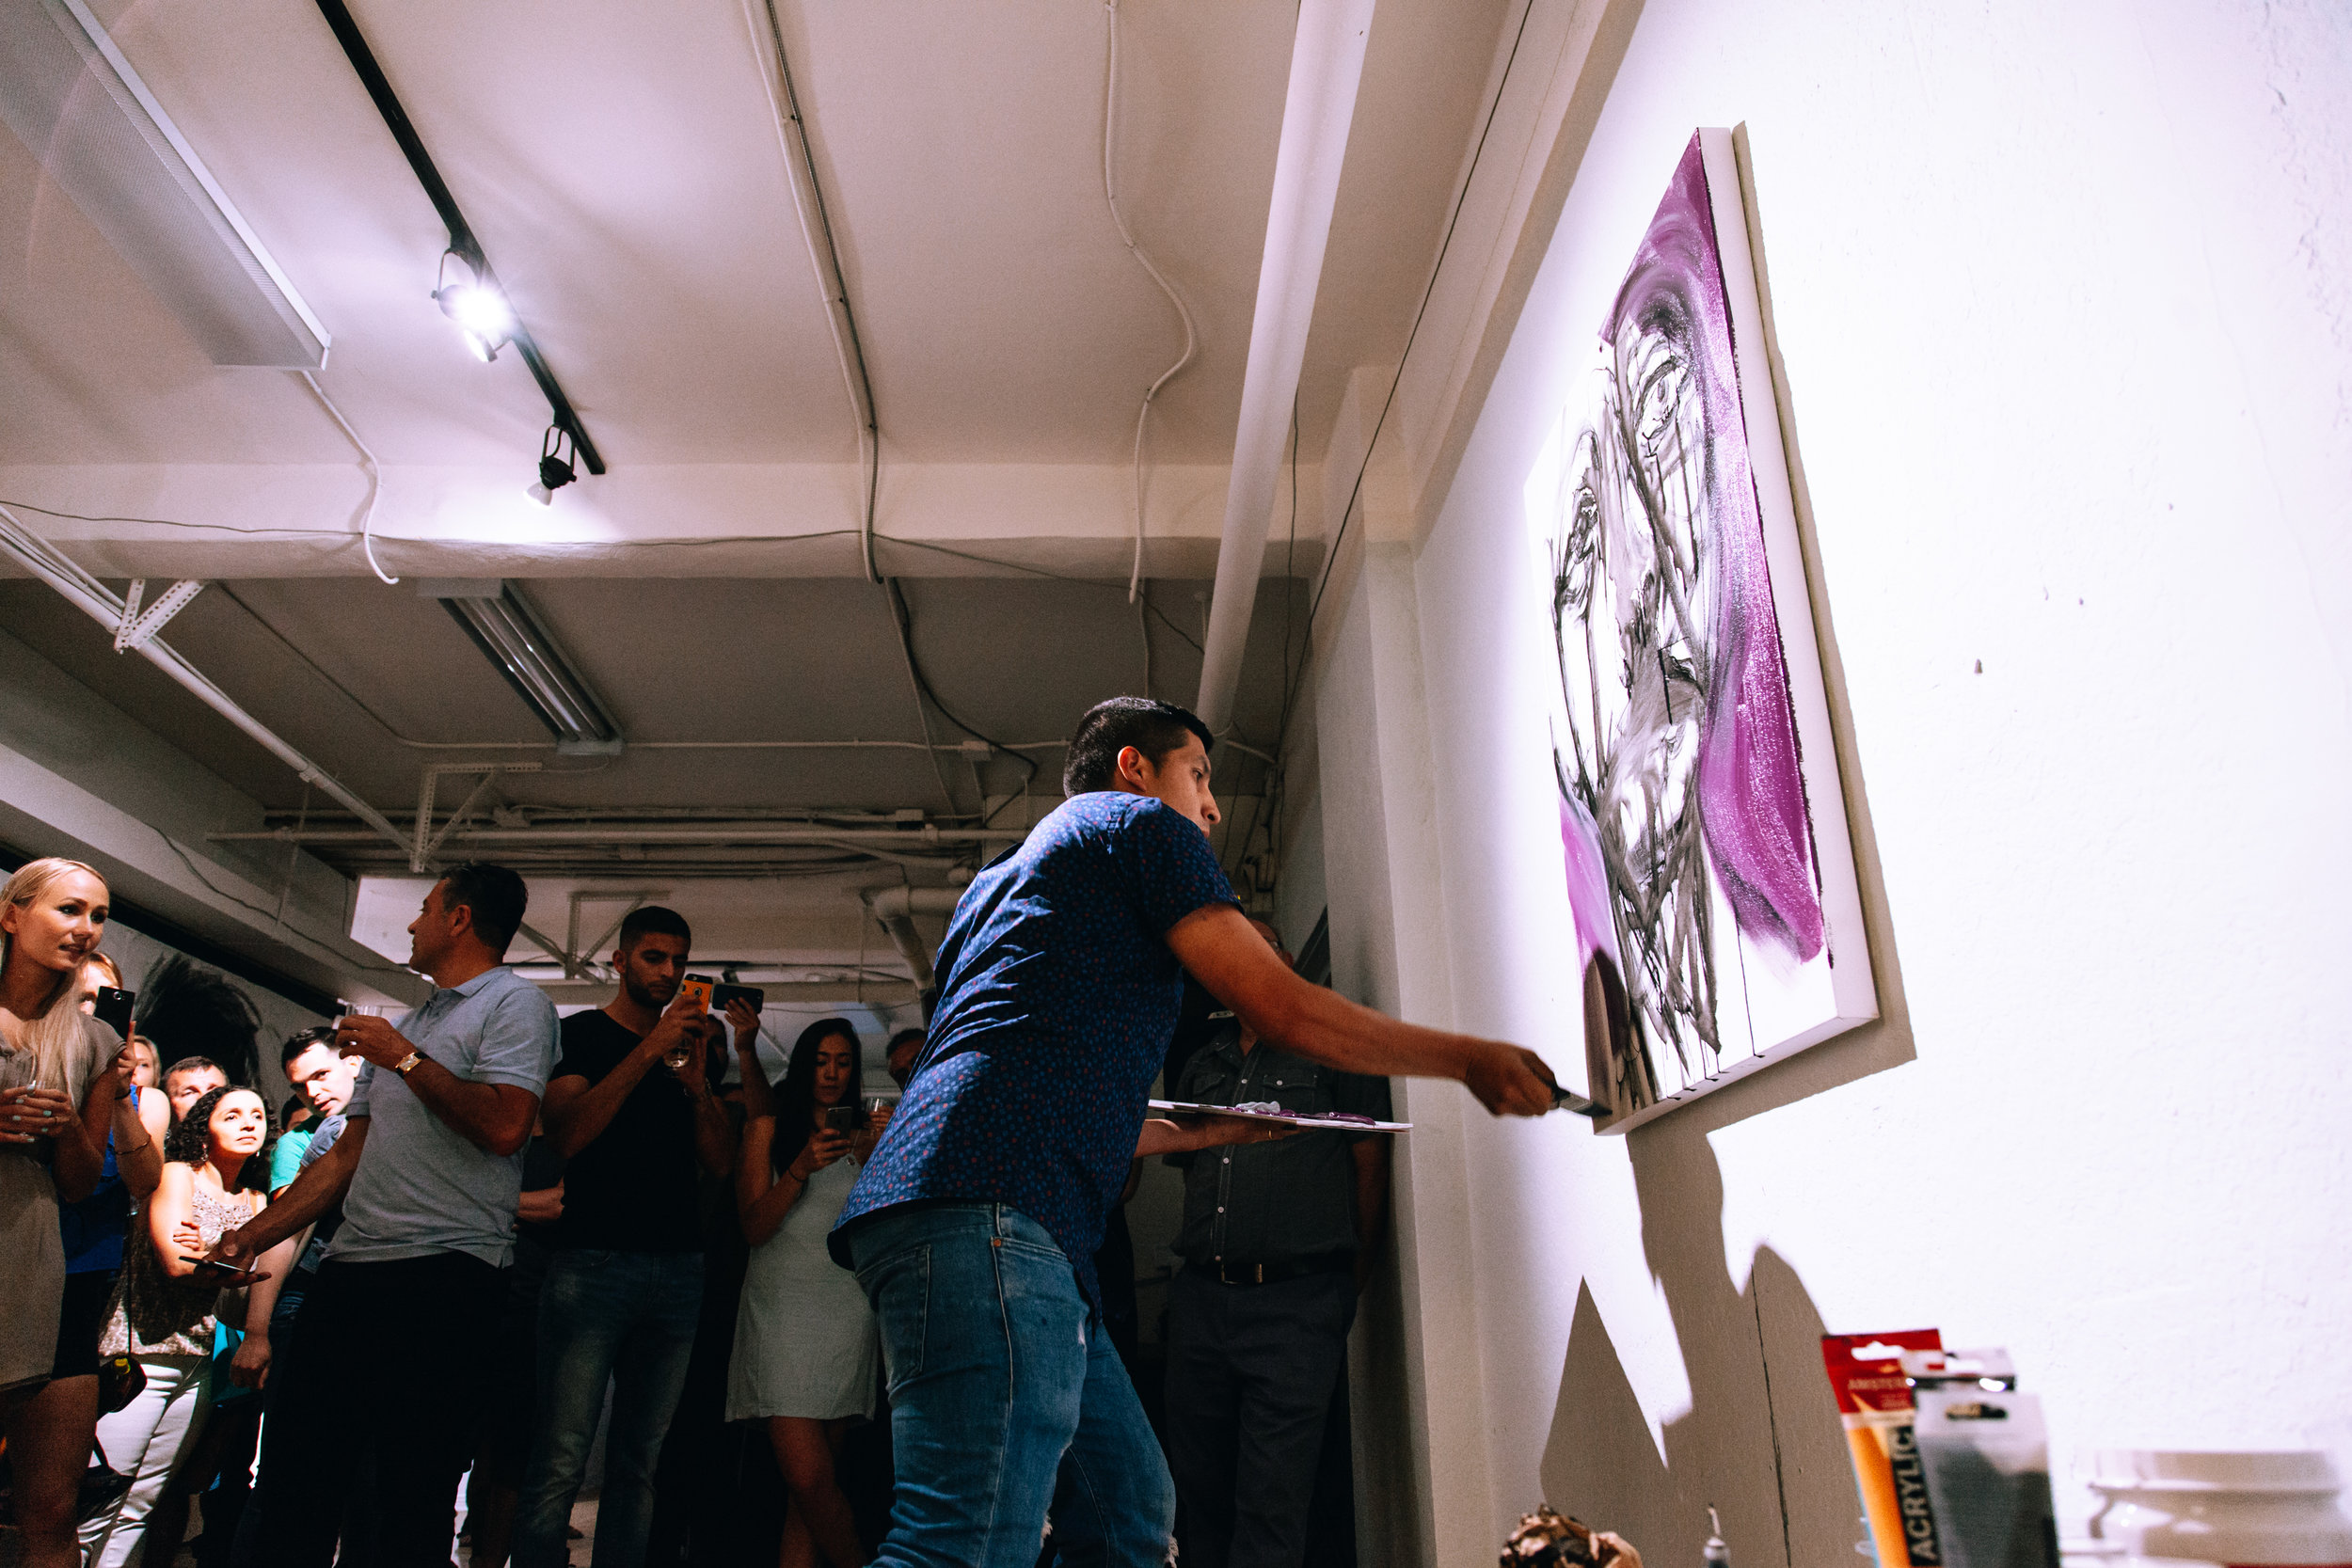 Live art activation at art show of abstract portraits by Colombian born, Toronto based artist Carlos Delgado in downtown Toronto at Orchid Signs.